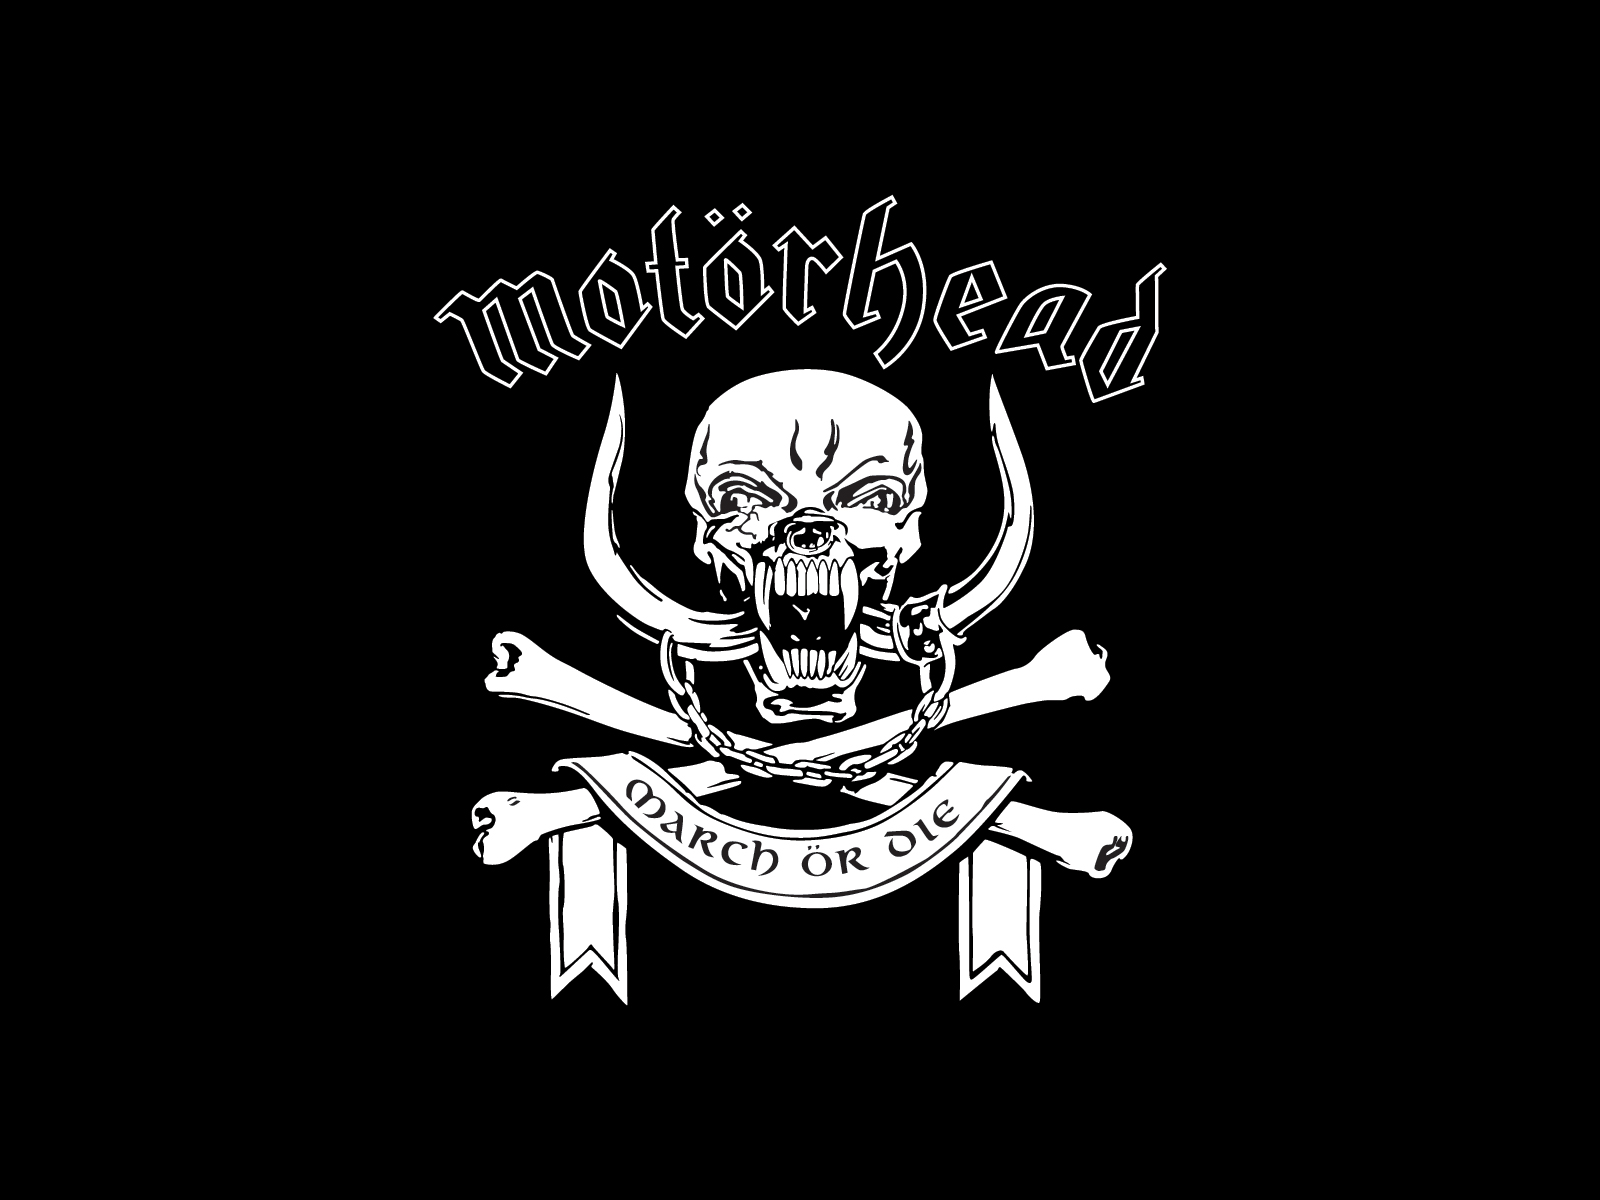 motorhead wallpaper | Band logos - Rock band logos, metal bands